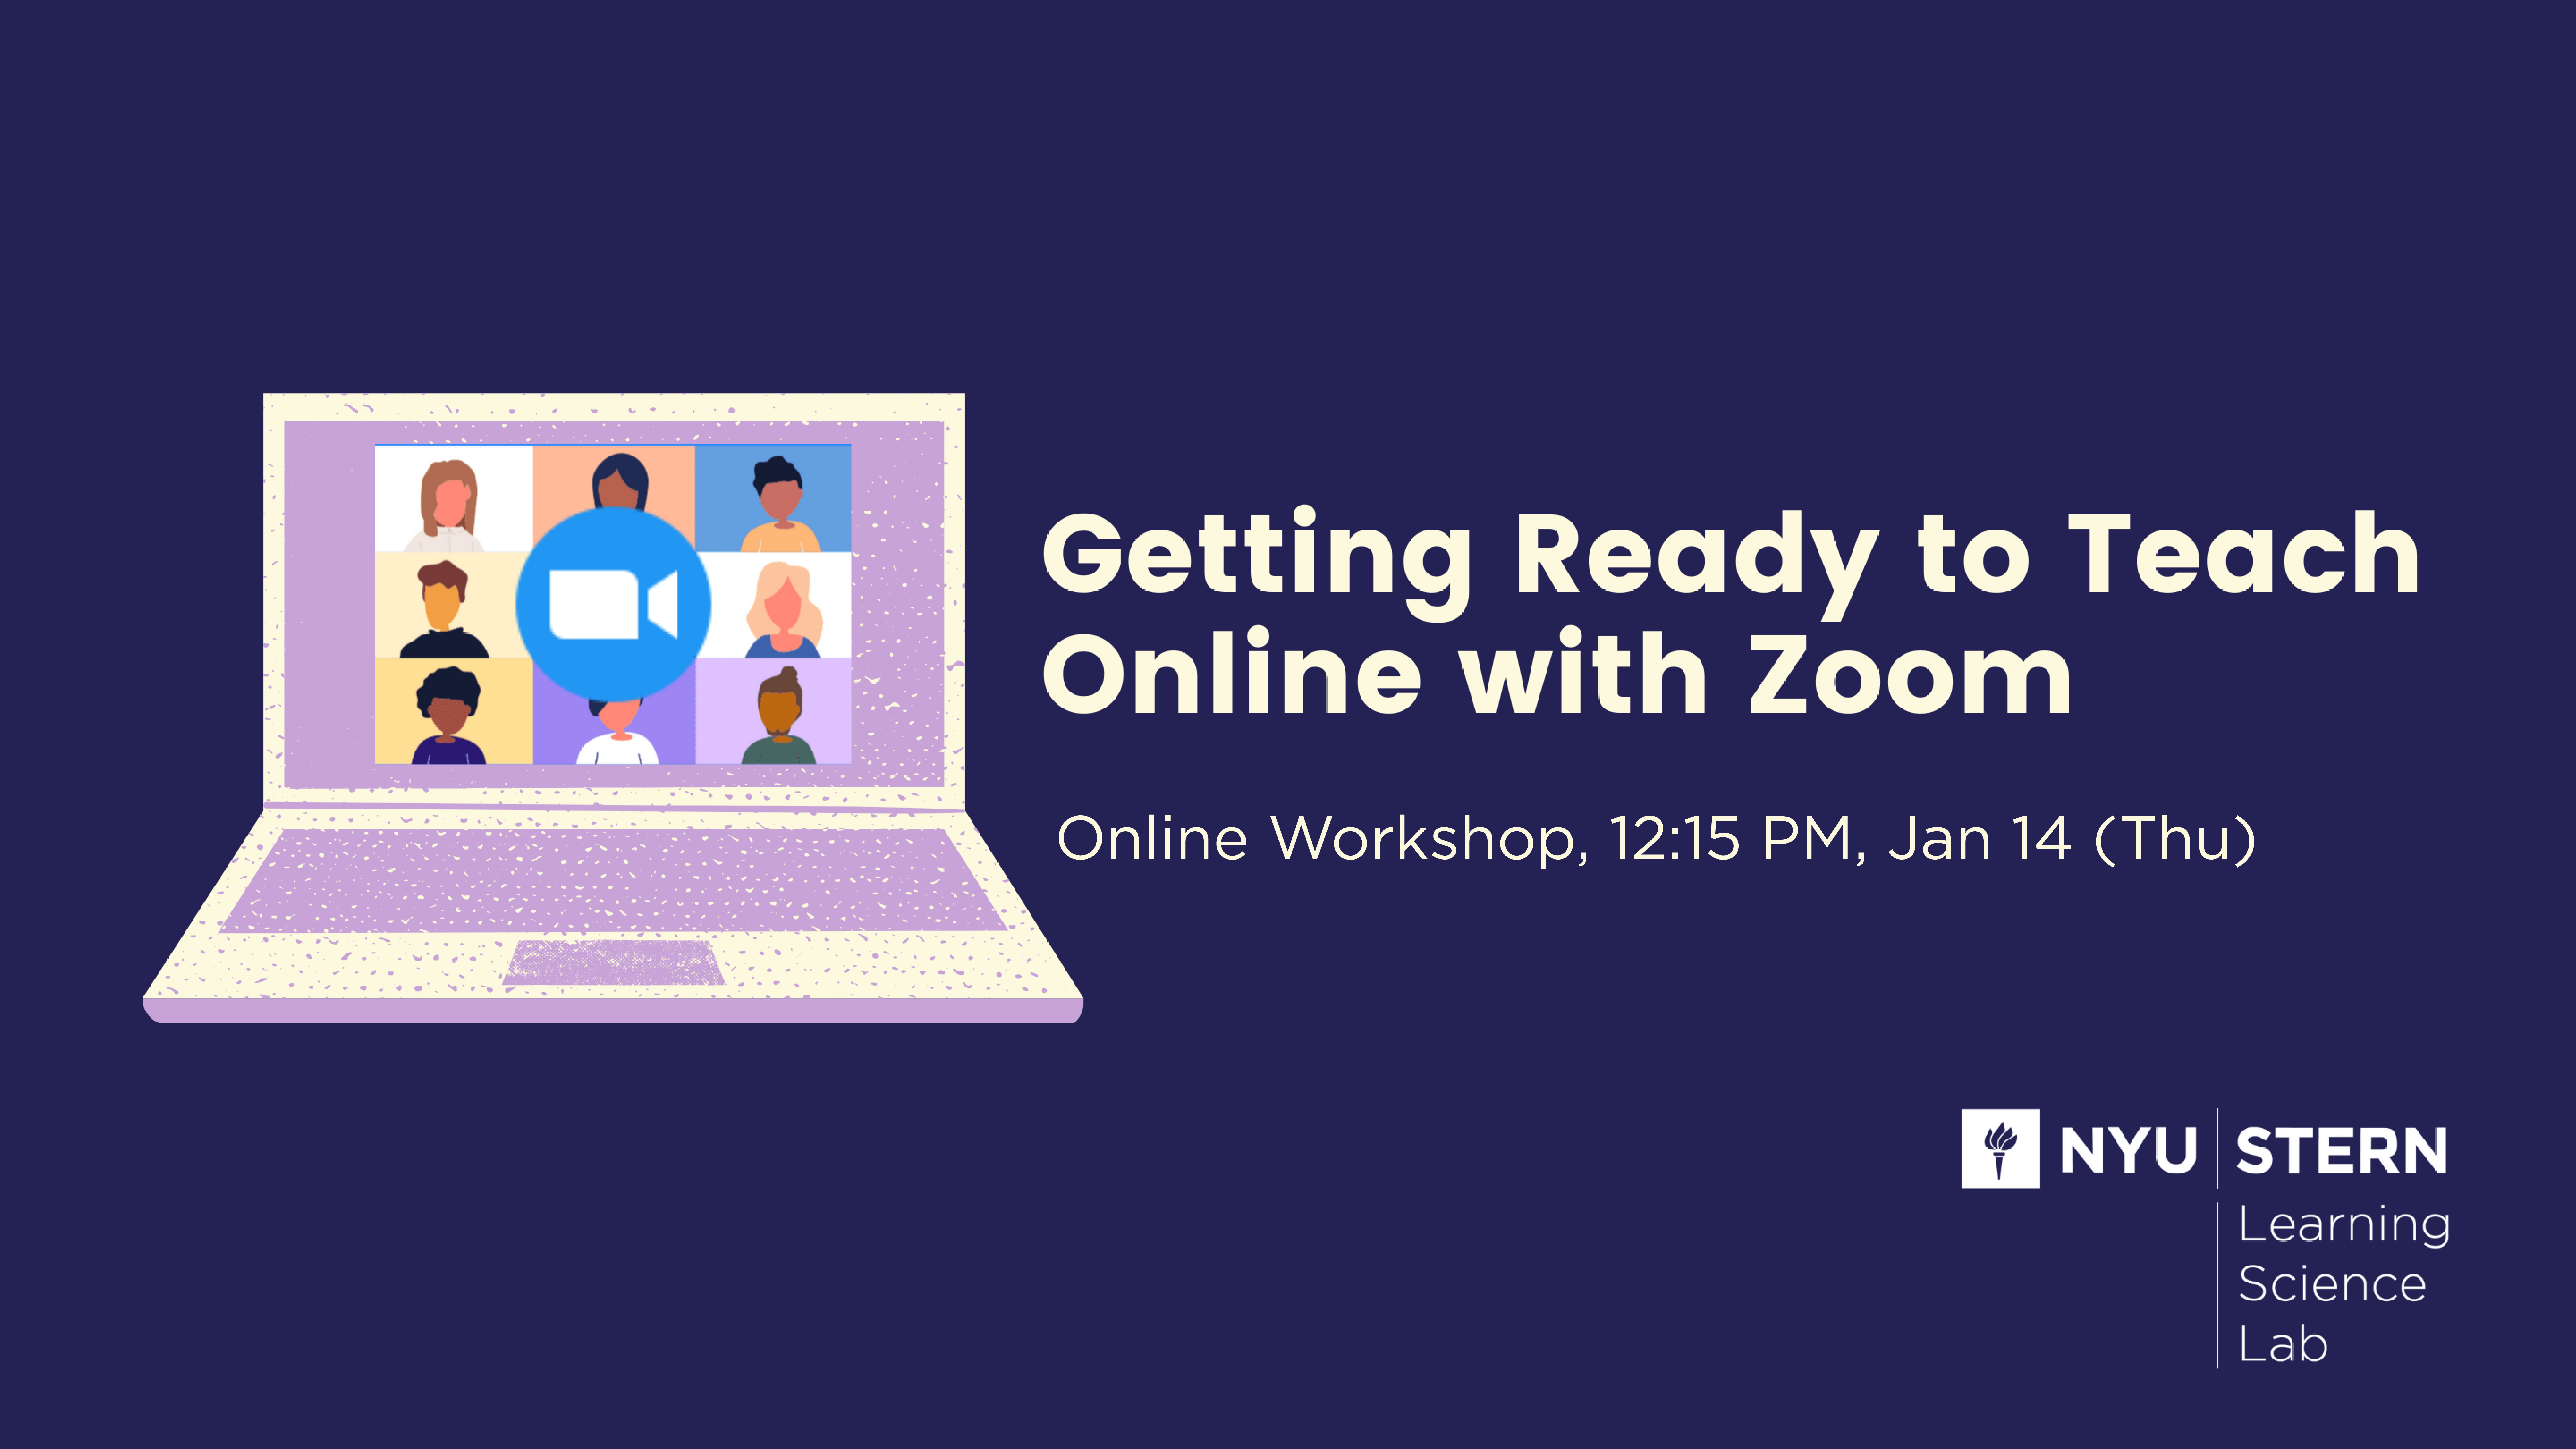 Getting ready to teach online with Zoom Online Workshop 12:15pm Jan 14 (Thu)